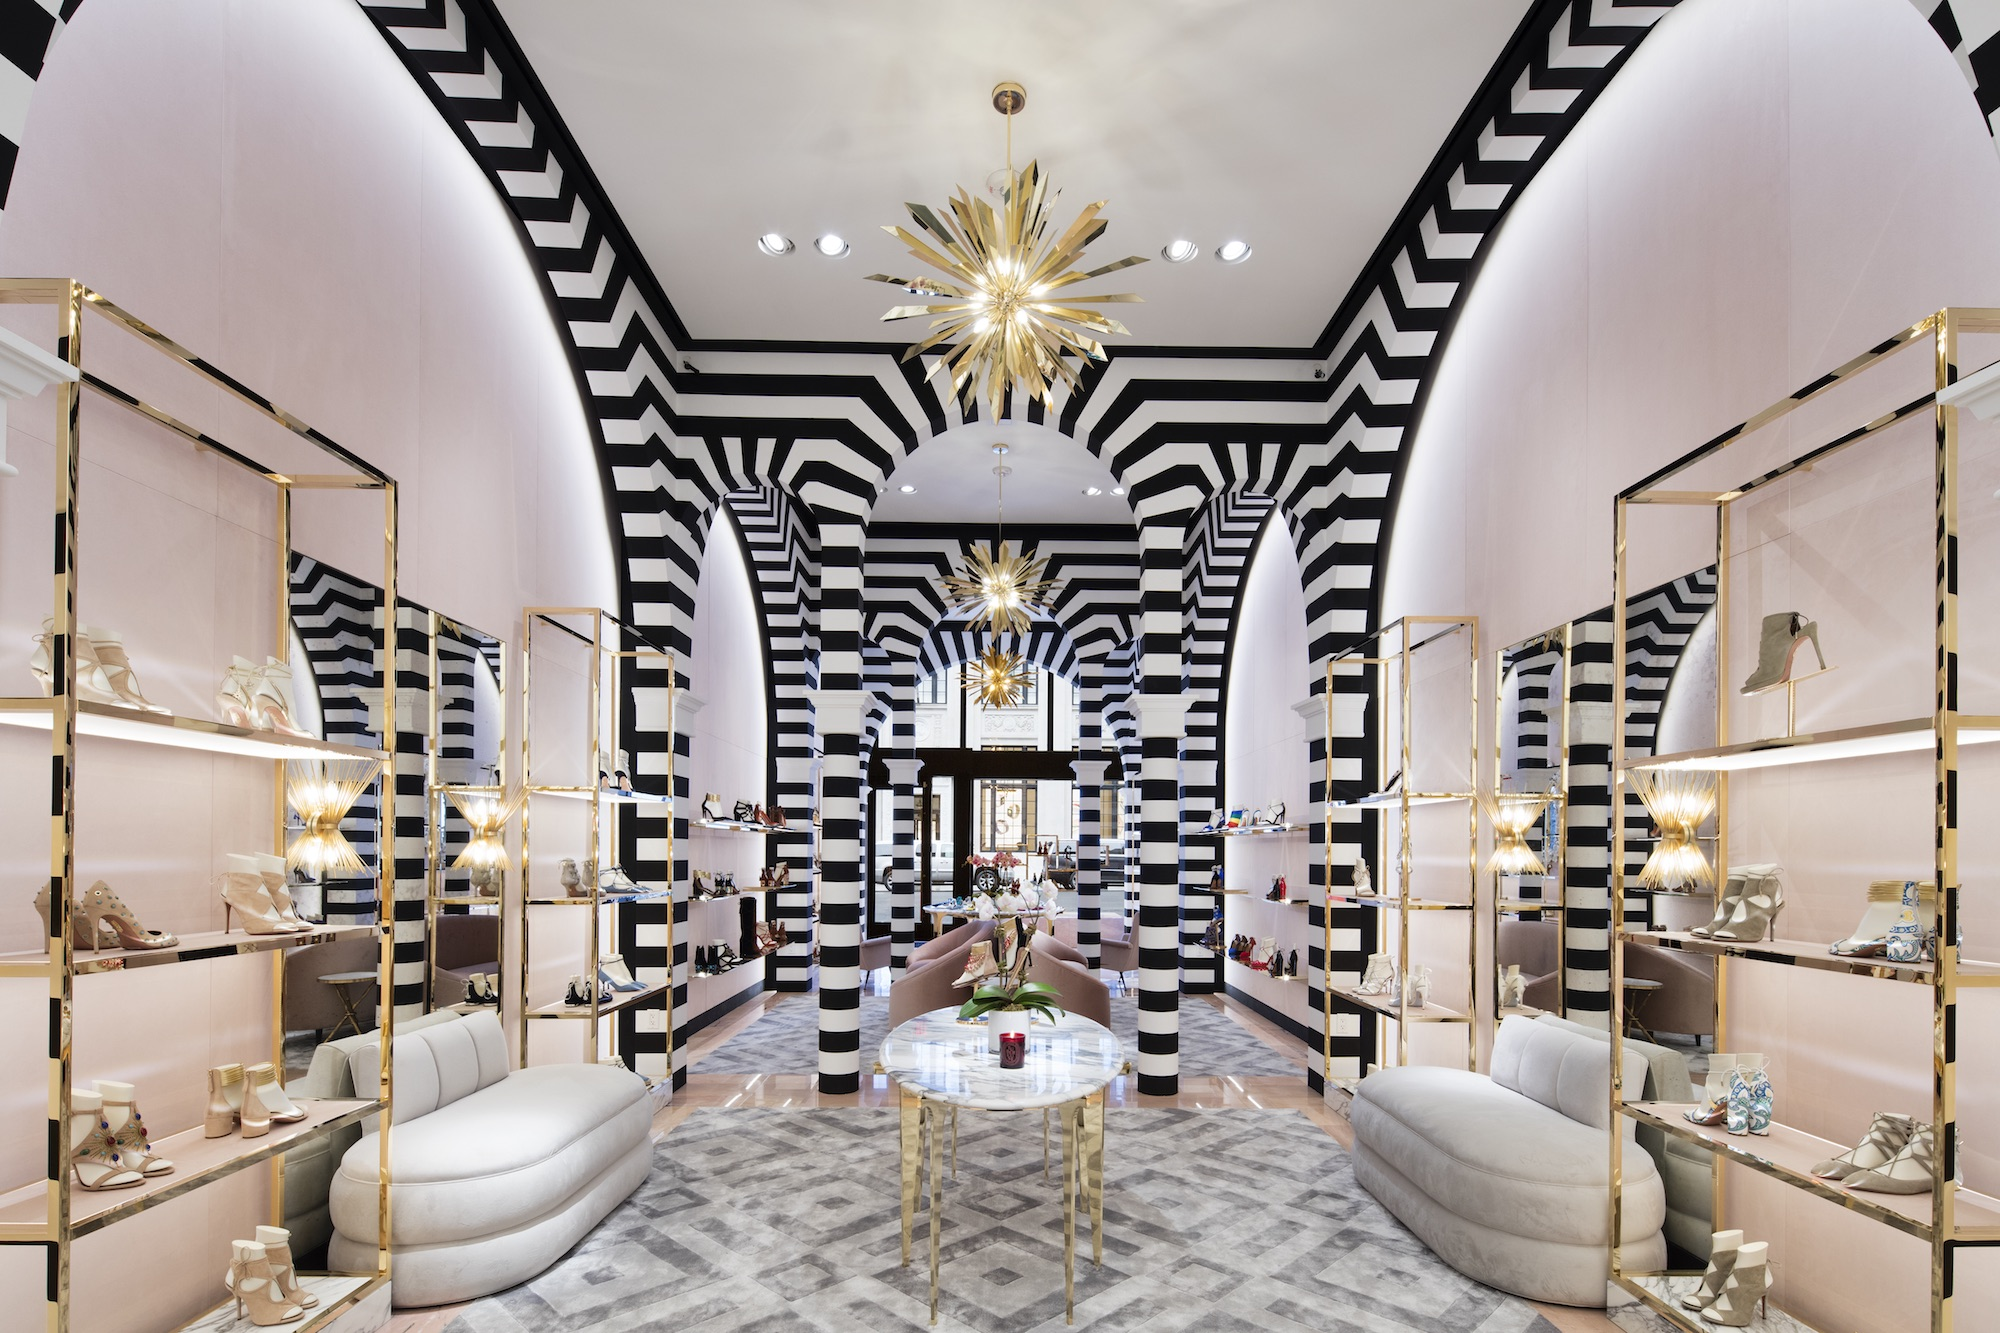 Gold Fixtures Black And White Striped Wallpaper Inside The Aquazzura Store In New